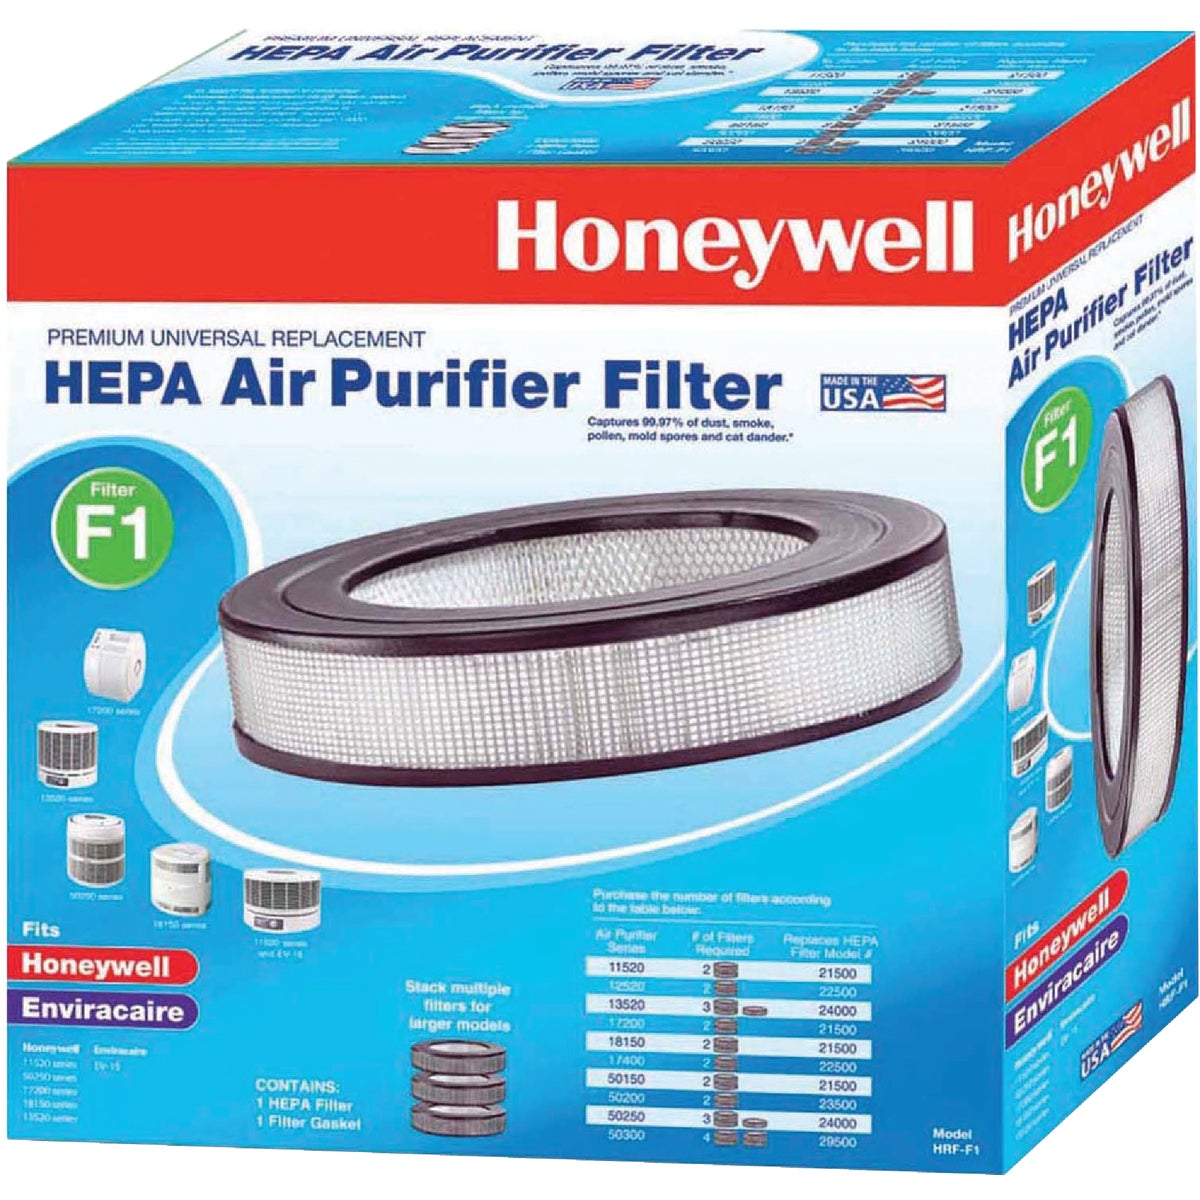 LONGLIFE TRUEHEPA FILTER - HRF-F1 by Kaz Home Environment